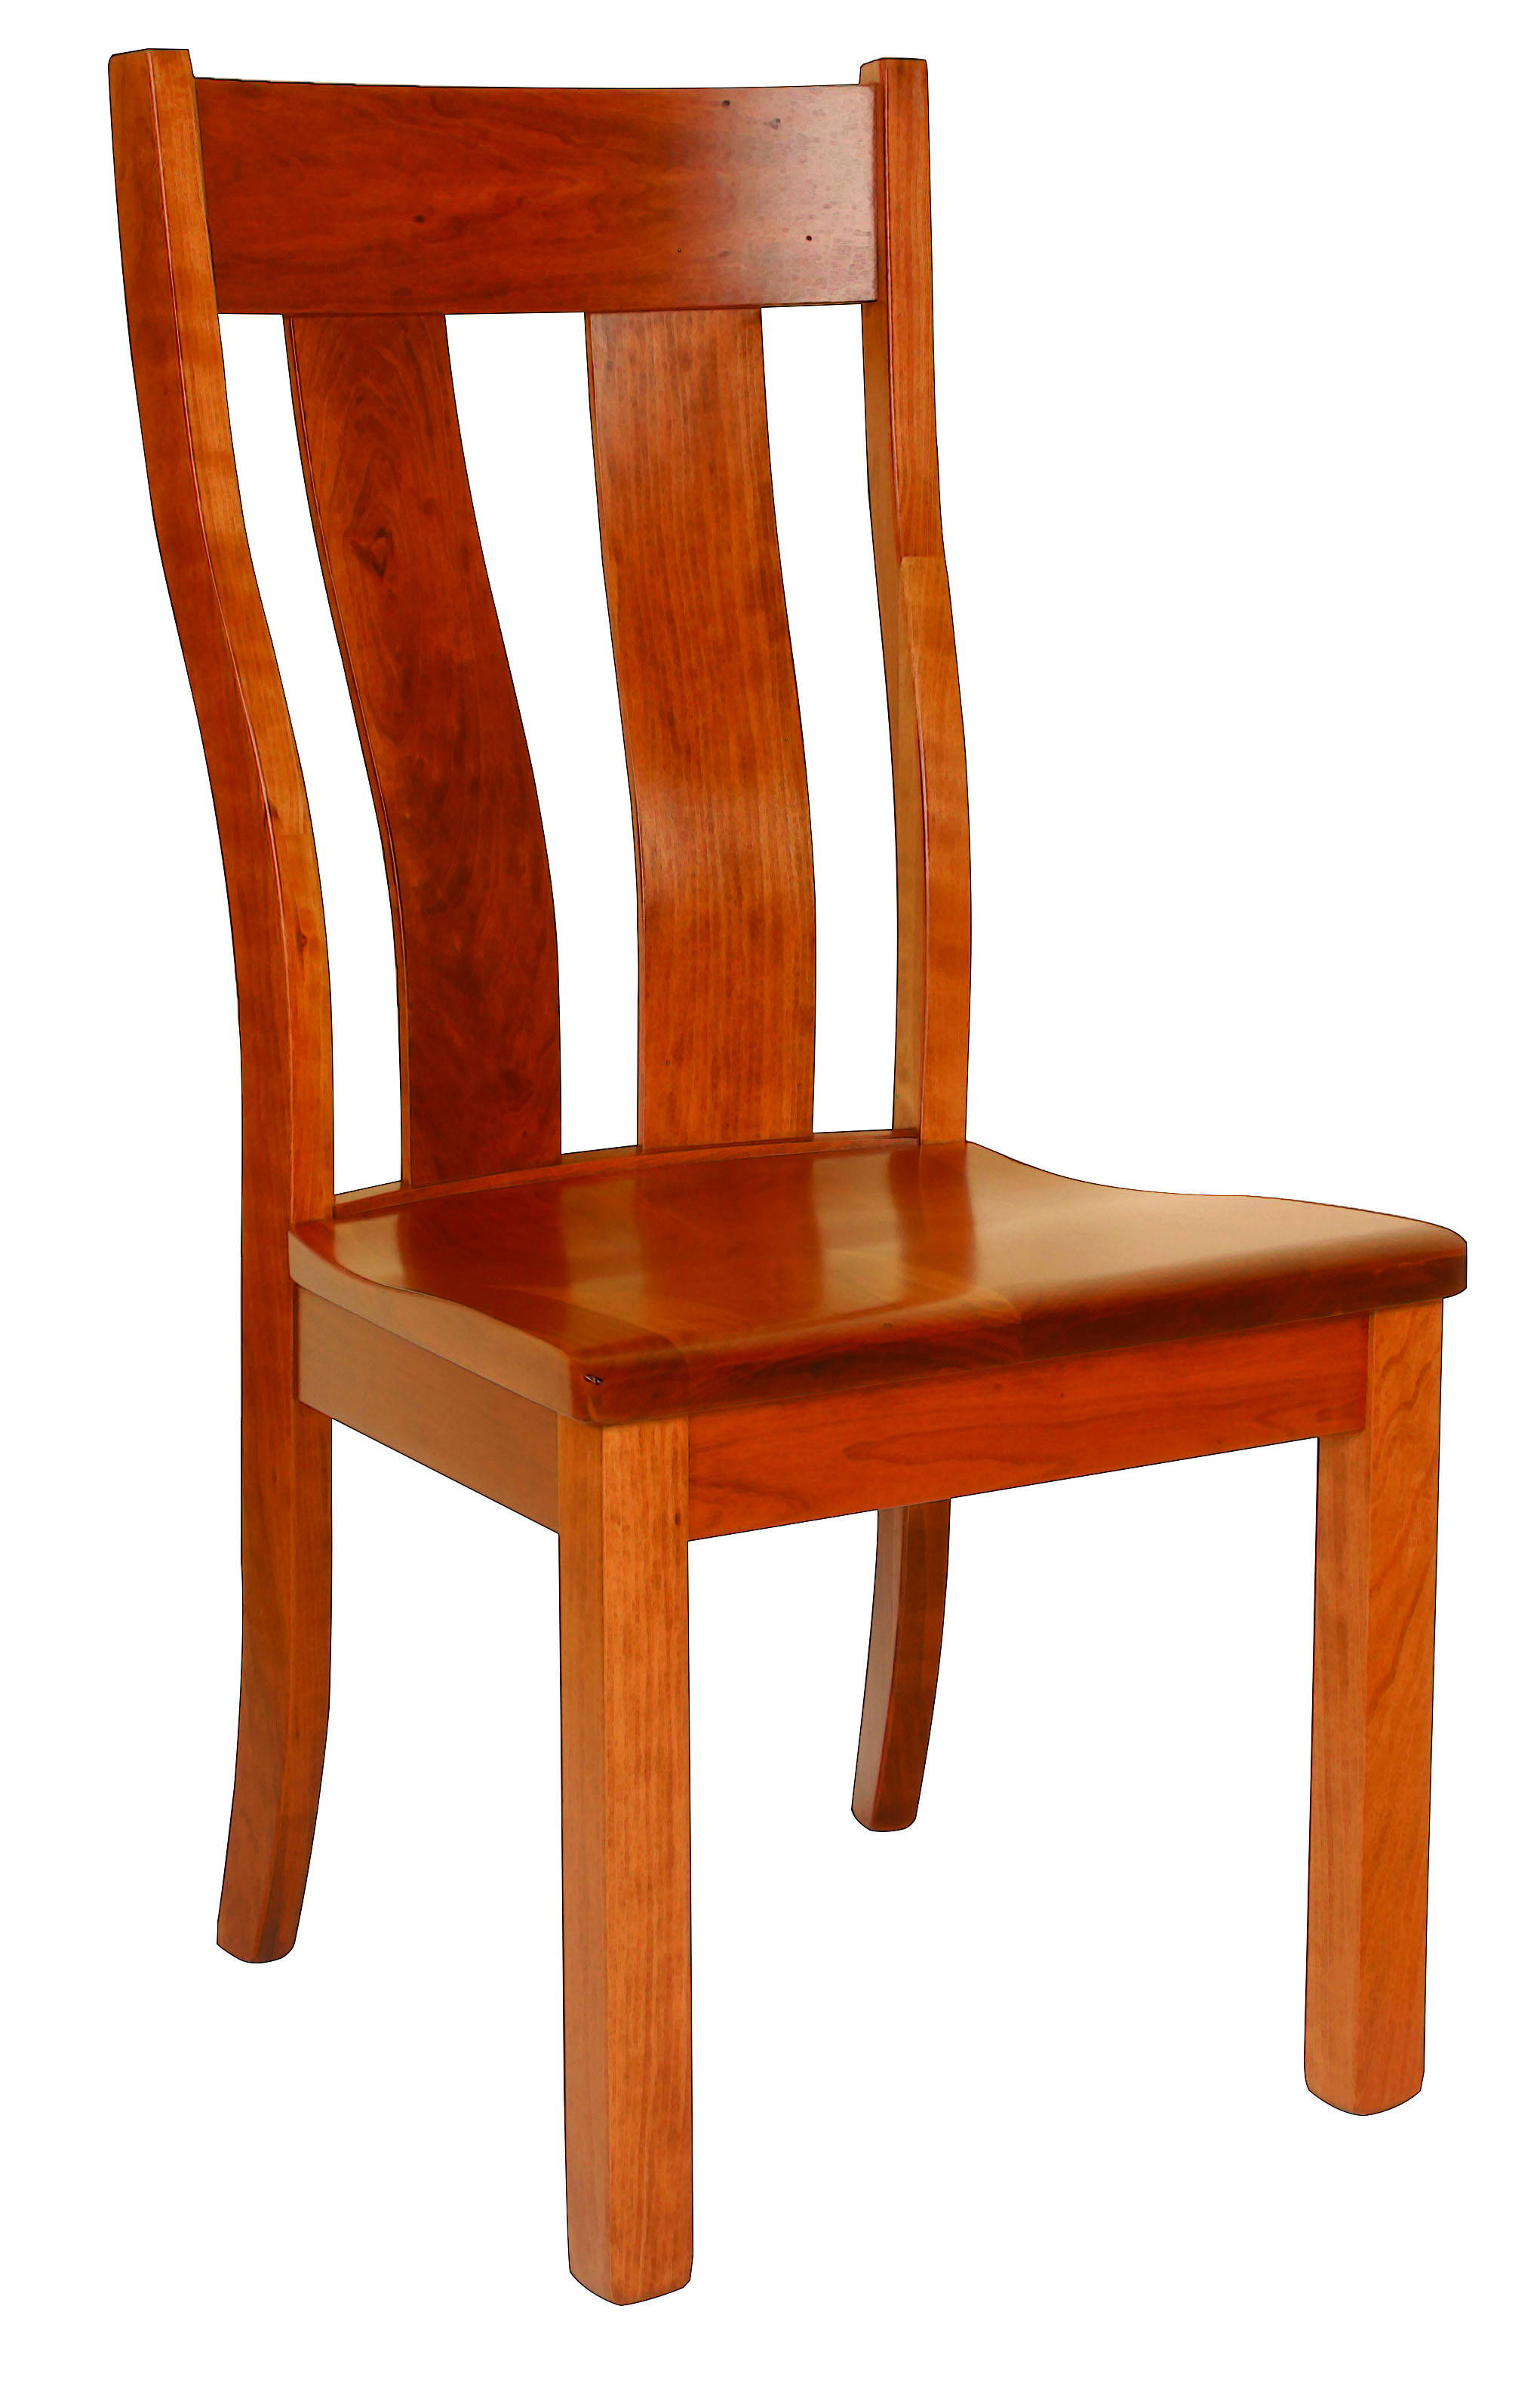 Urbana Solid Wood, Handcrafted Kitchen Chair or DIning Chair from Harvest Home Interiors Amish Furniture